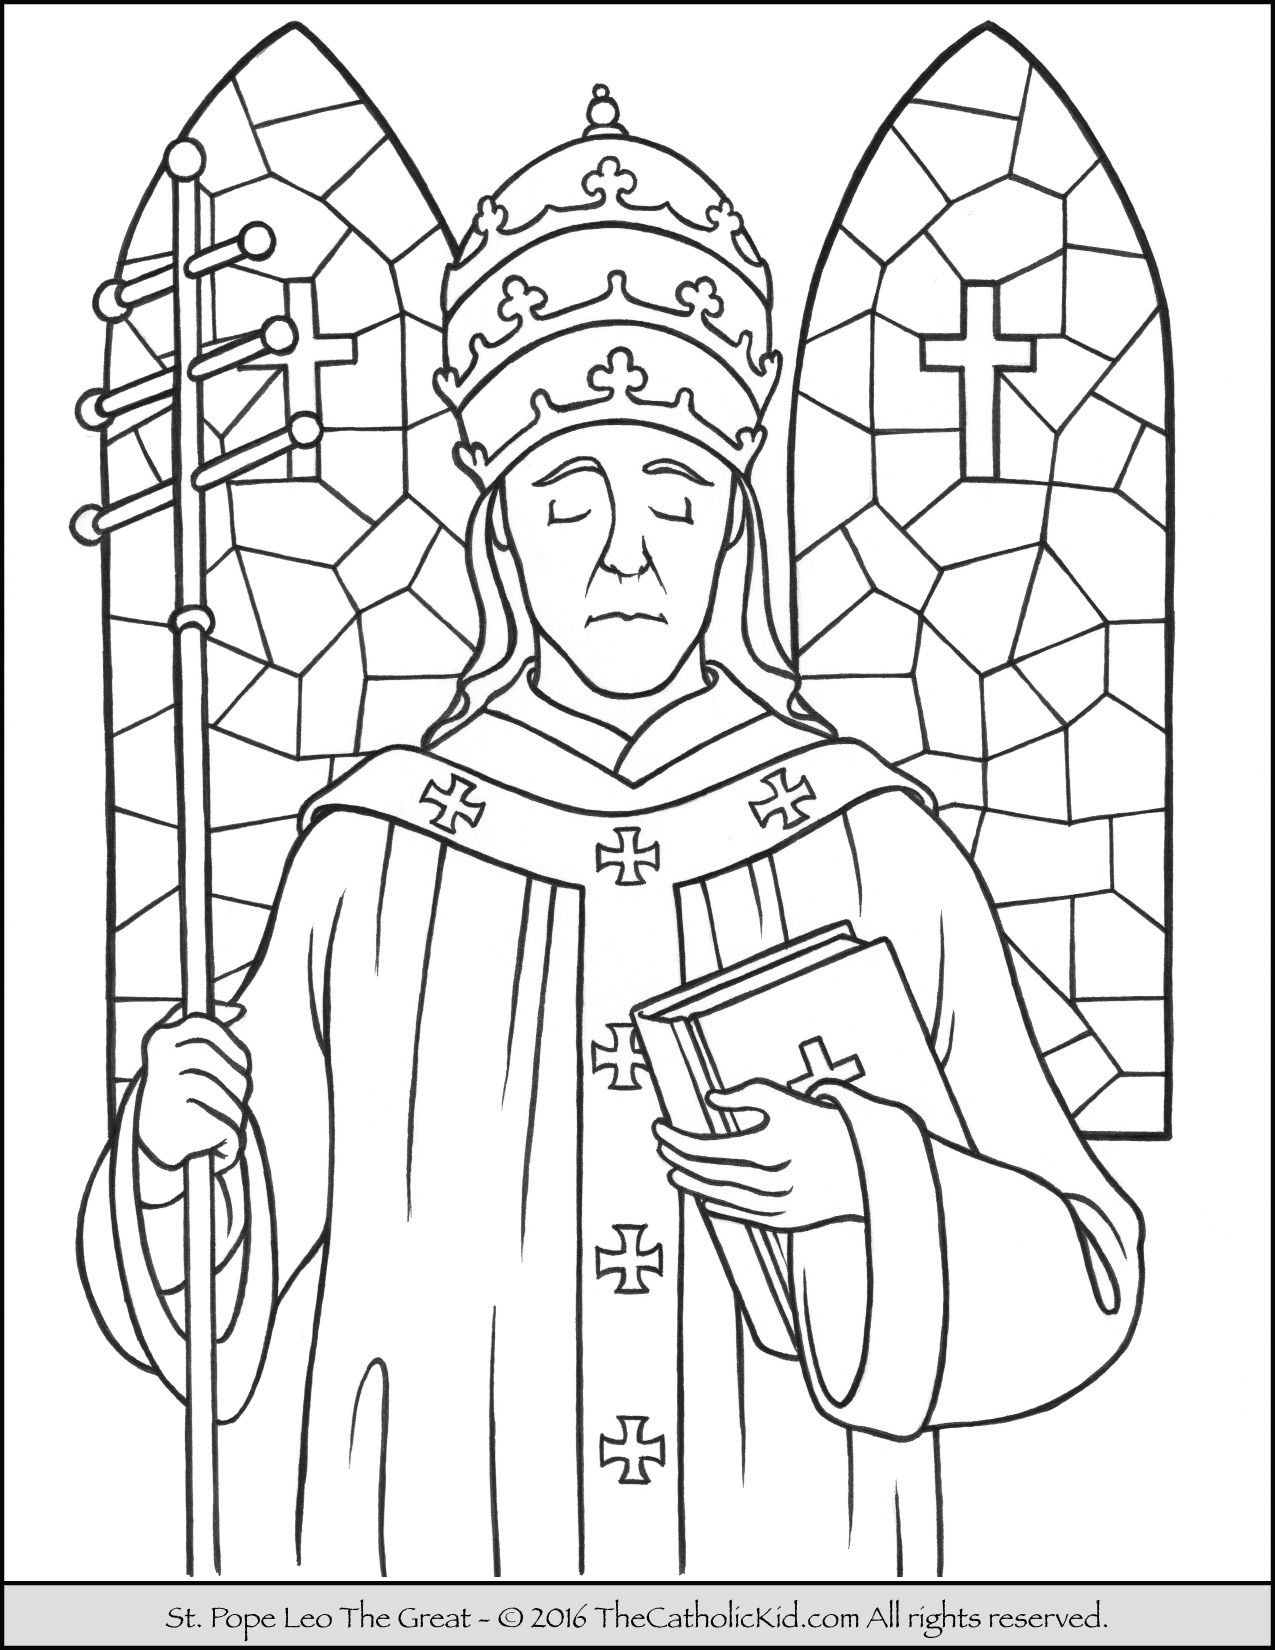 Saint Pope Leo the Great Coloring Page - The Catholic Kid | Catholic ...